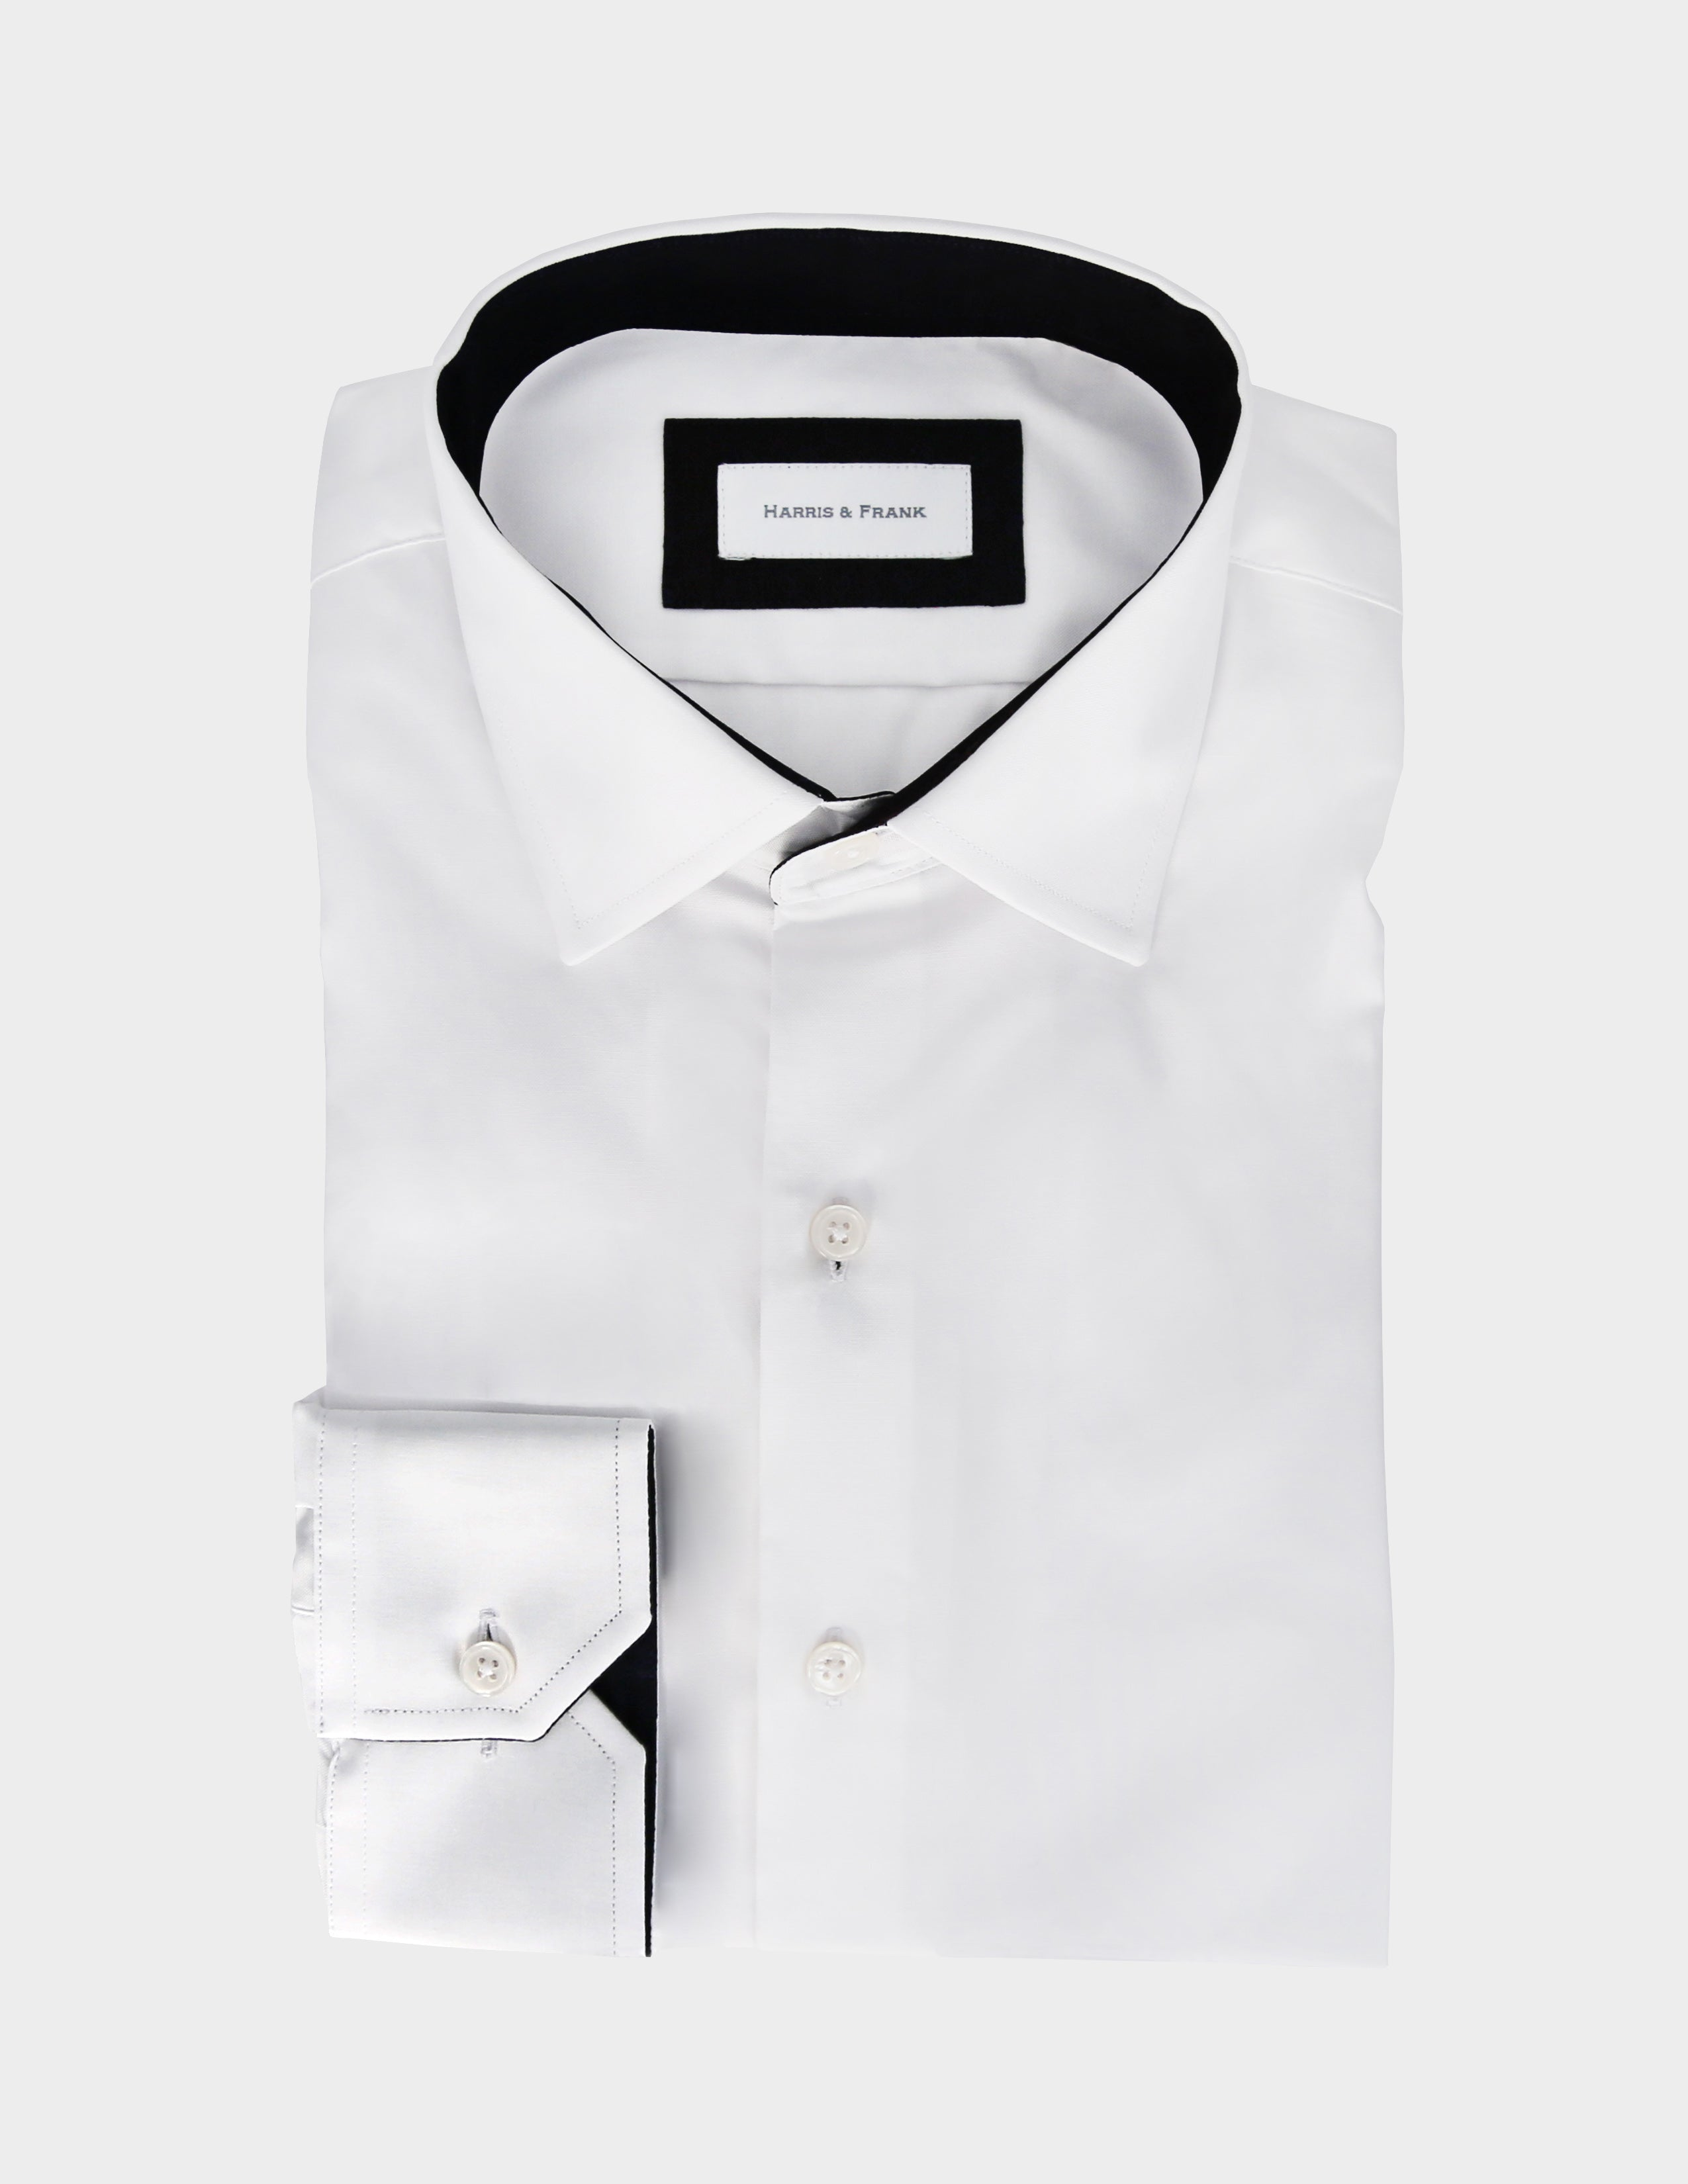 White Shirt with Inside Print